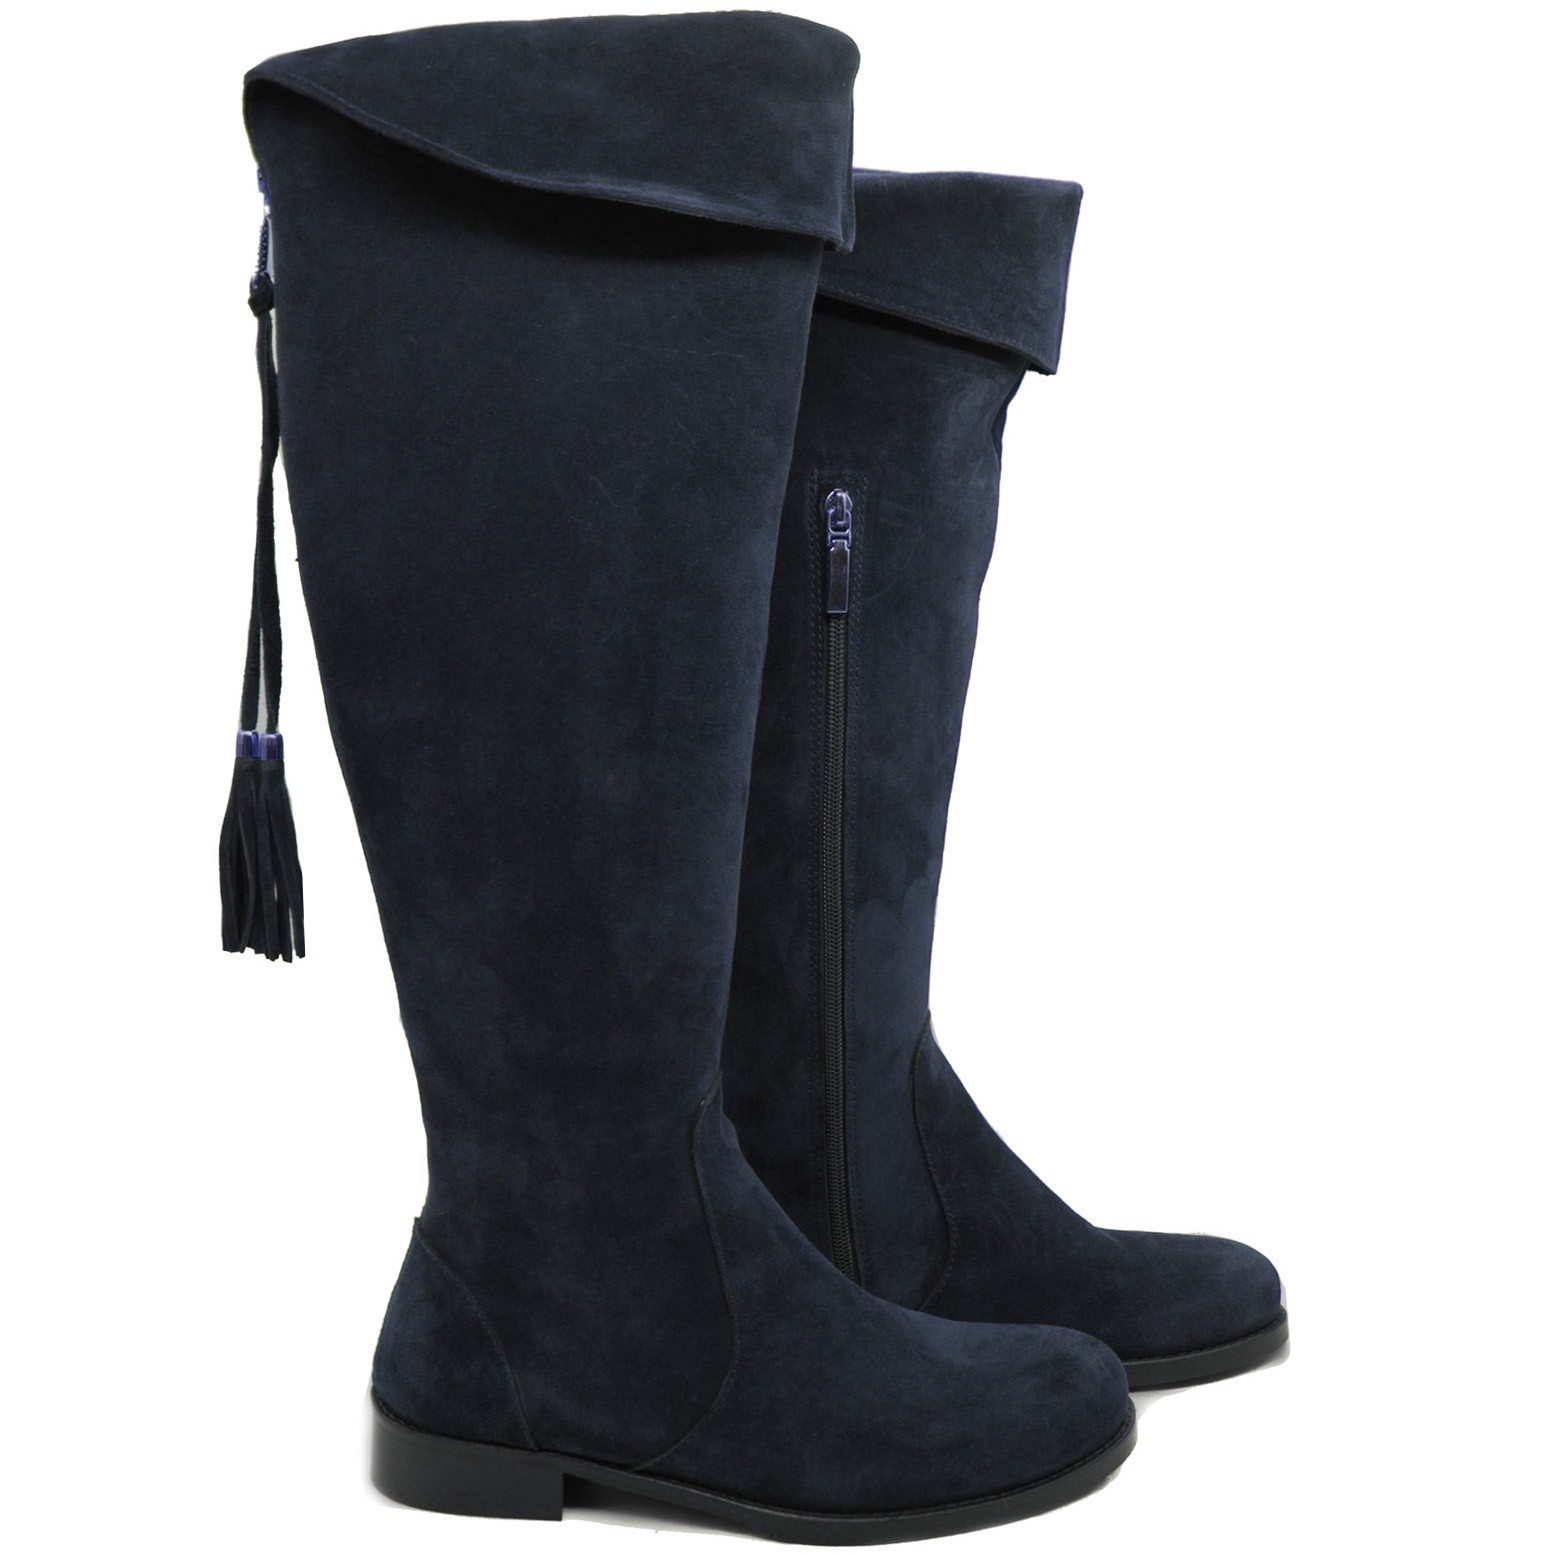 LucyToni Womens Suede Knee High Stylish Burghley Boots for All Seasons - Blue